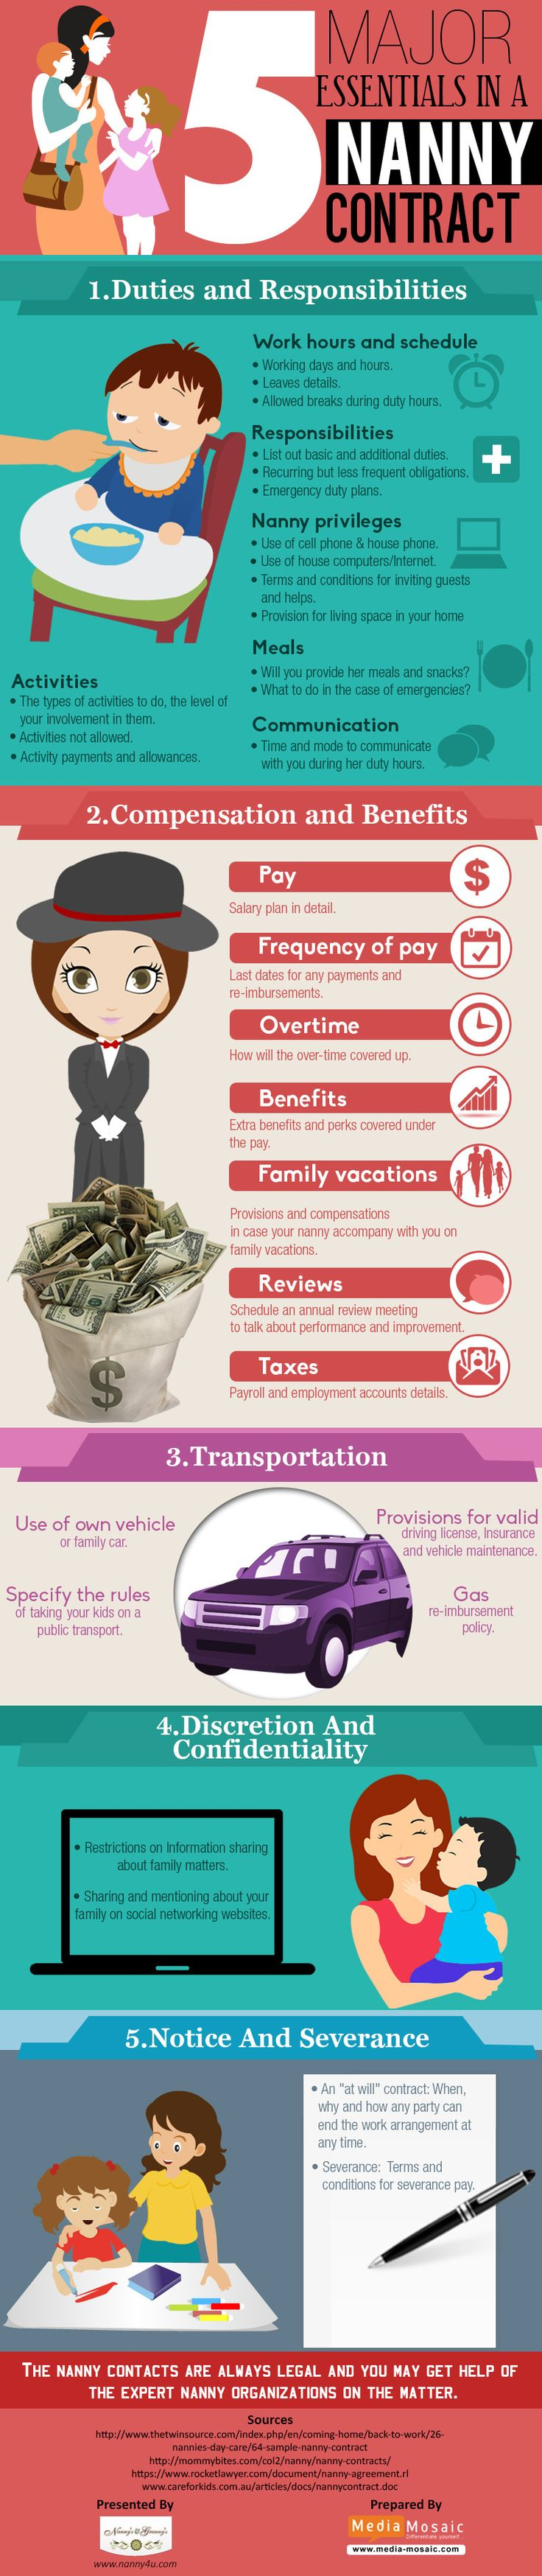 5 Major Essentials In A Nanny Contract   #infographic #Nanny #Family